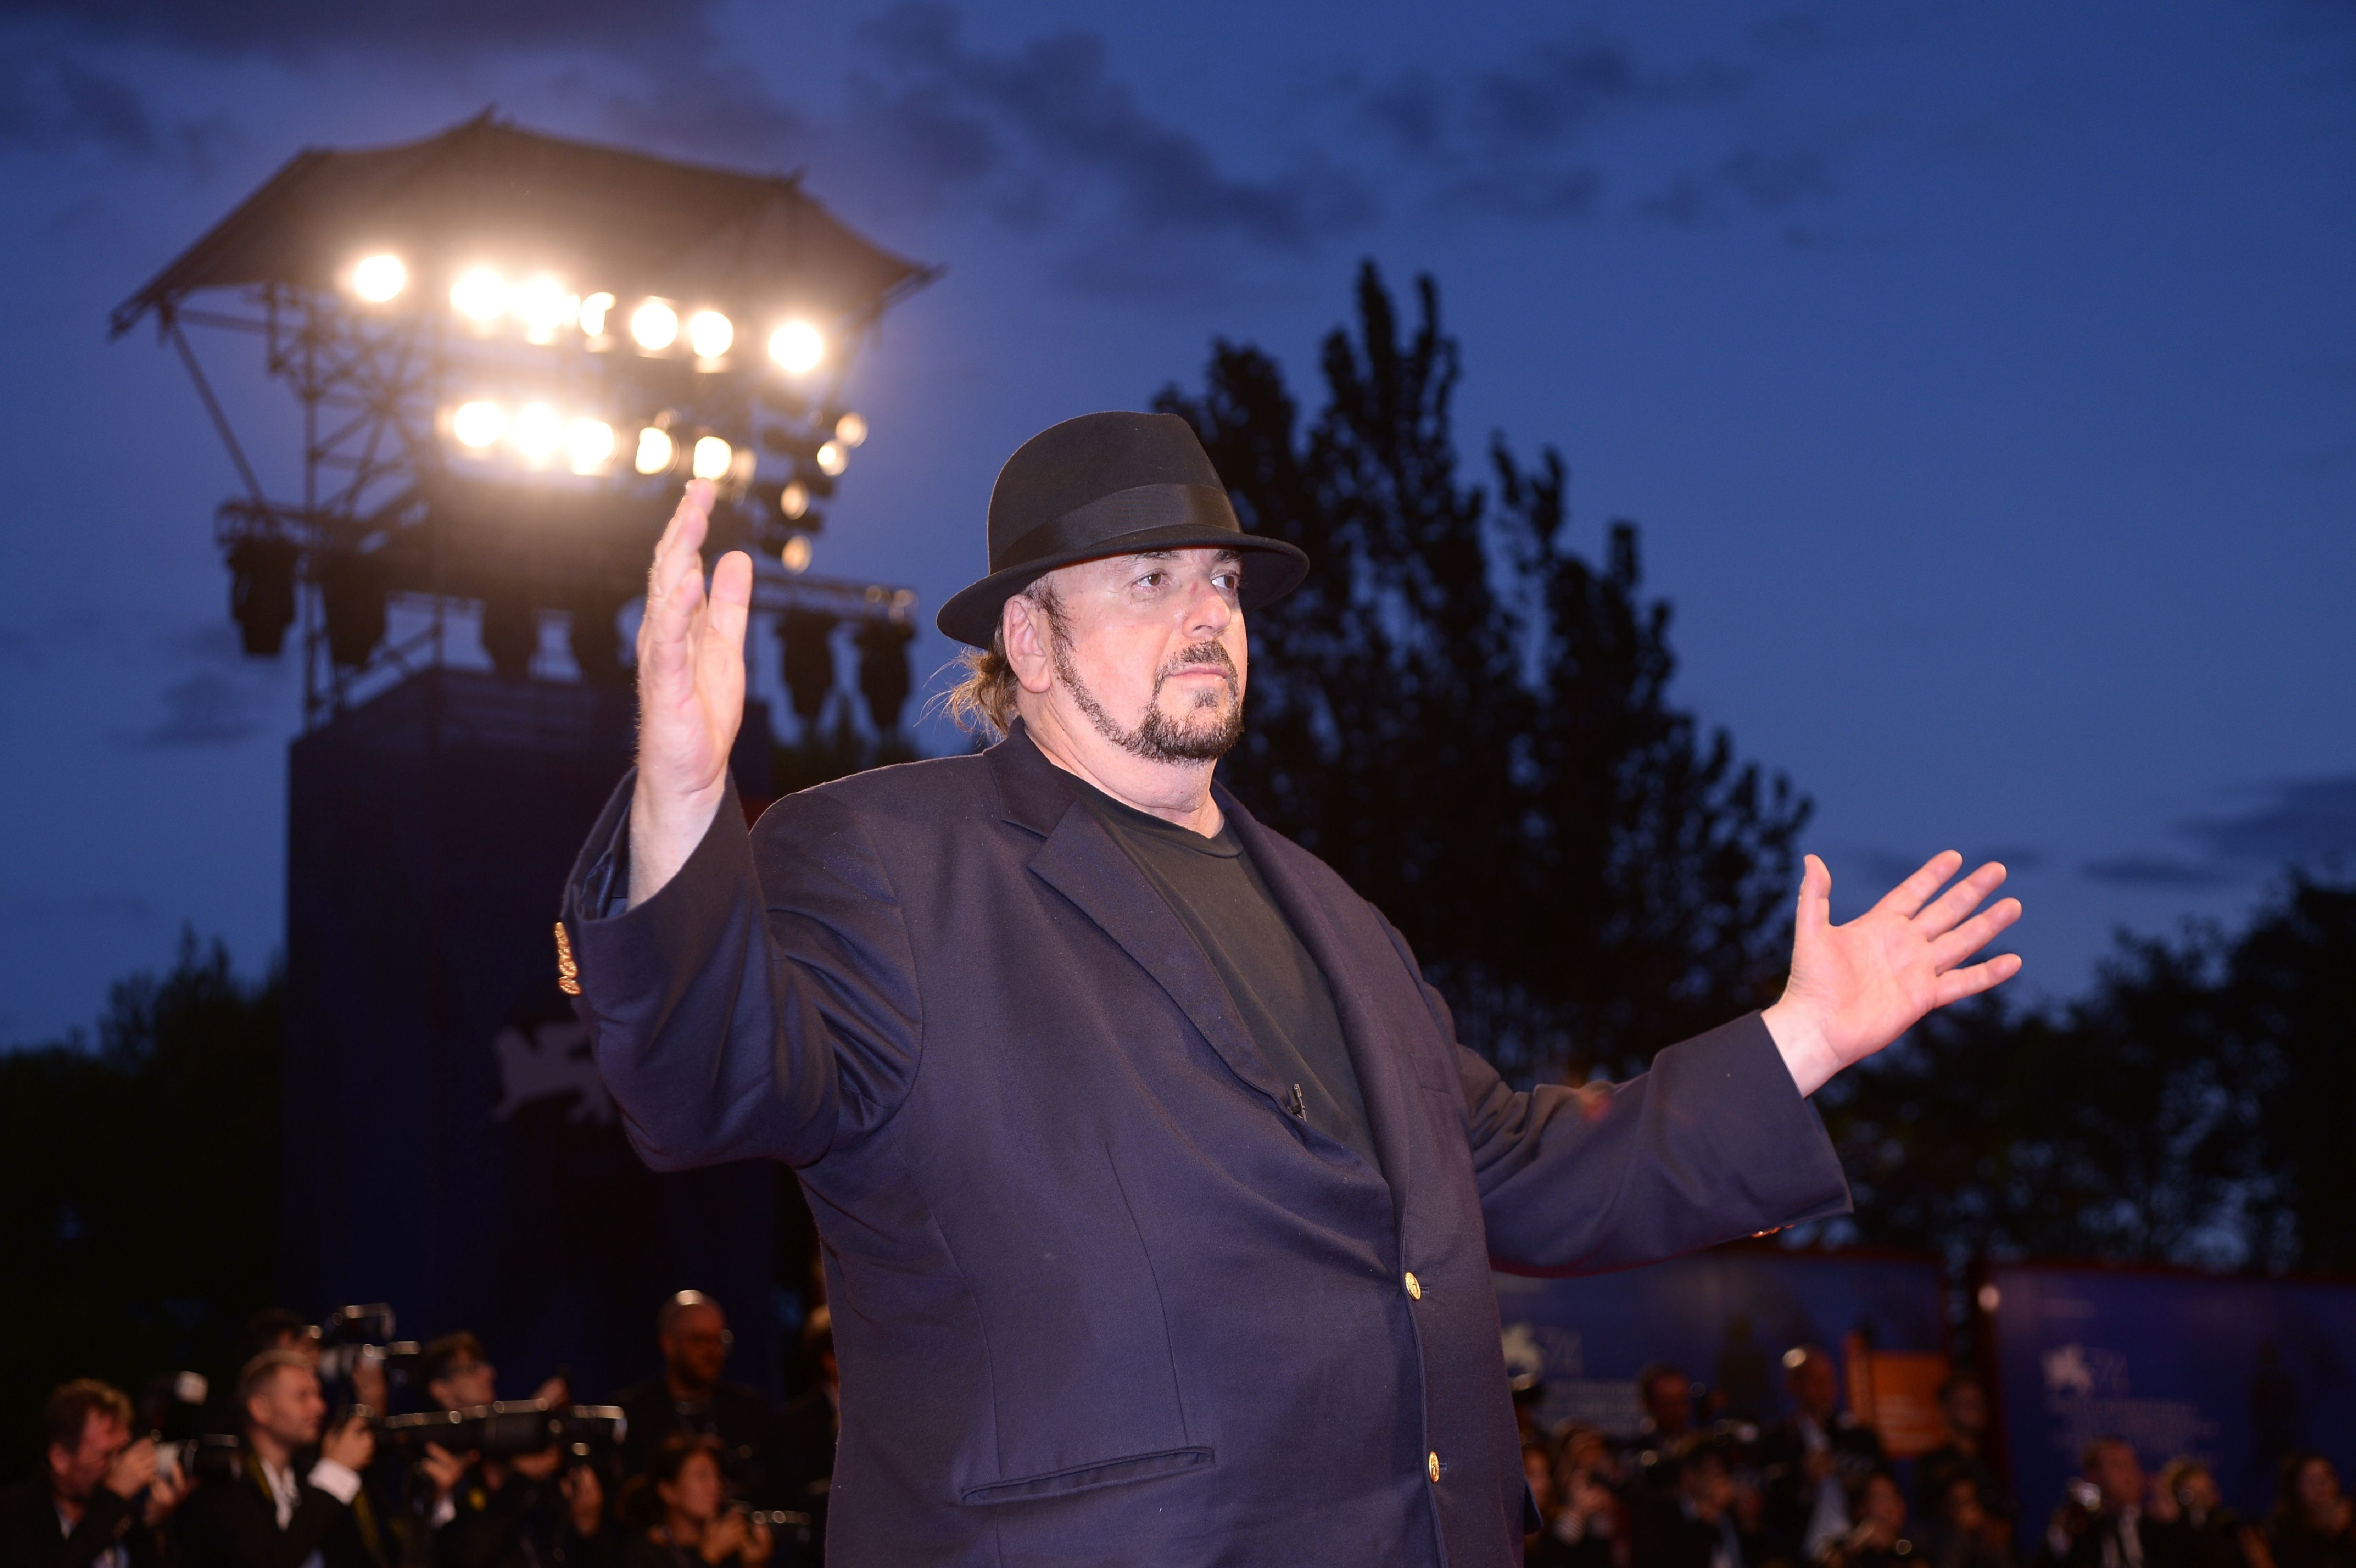 James Toback attends the premiere of the movie 'The Private Life of a modern Woman' presented out of competition at the 74th Venice Film Festival on September 3, 2017 at Venice Lido.  / AFP PHOTO / Filippo MONTEFORTE        (Photo credit should read FILIPPO MONTEFORTE/AFP/Getty Images)